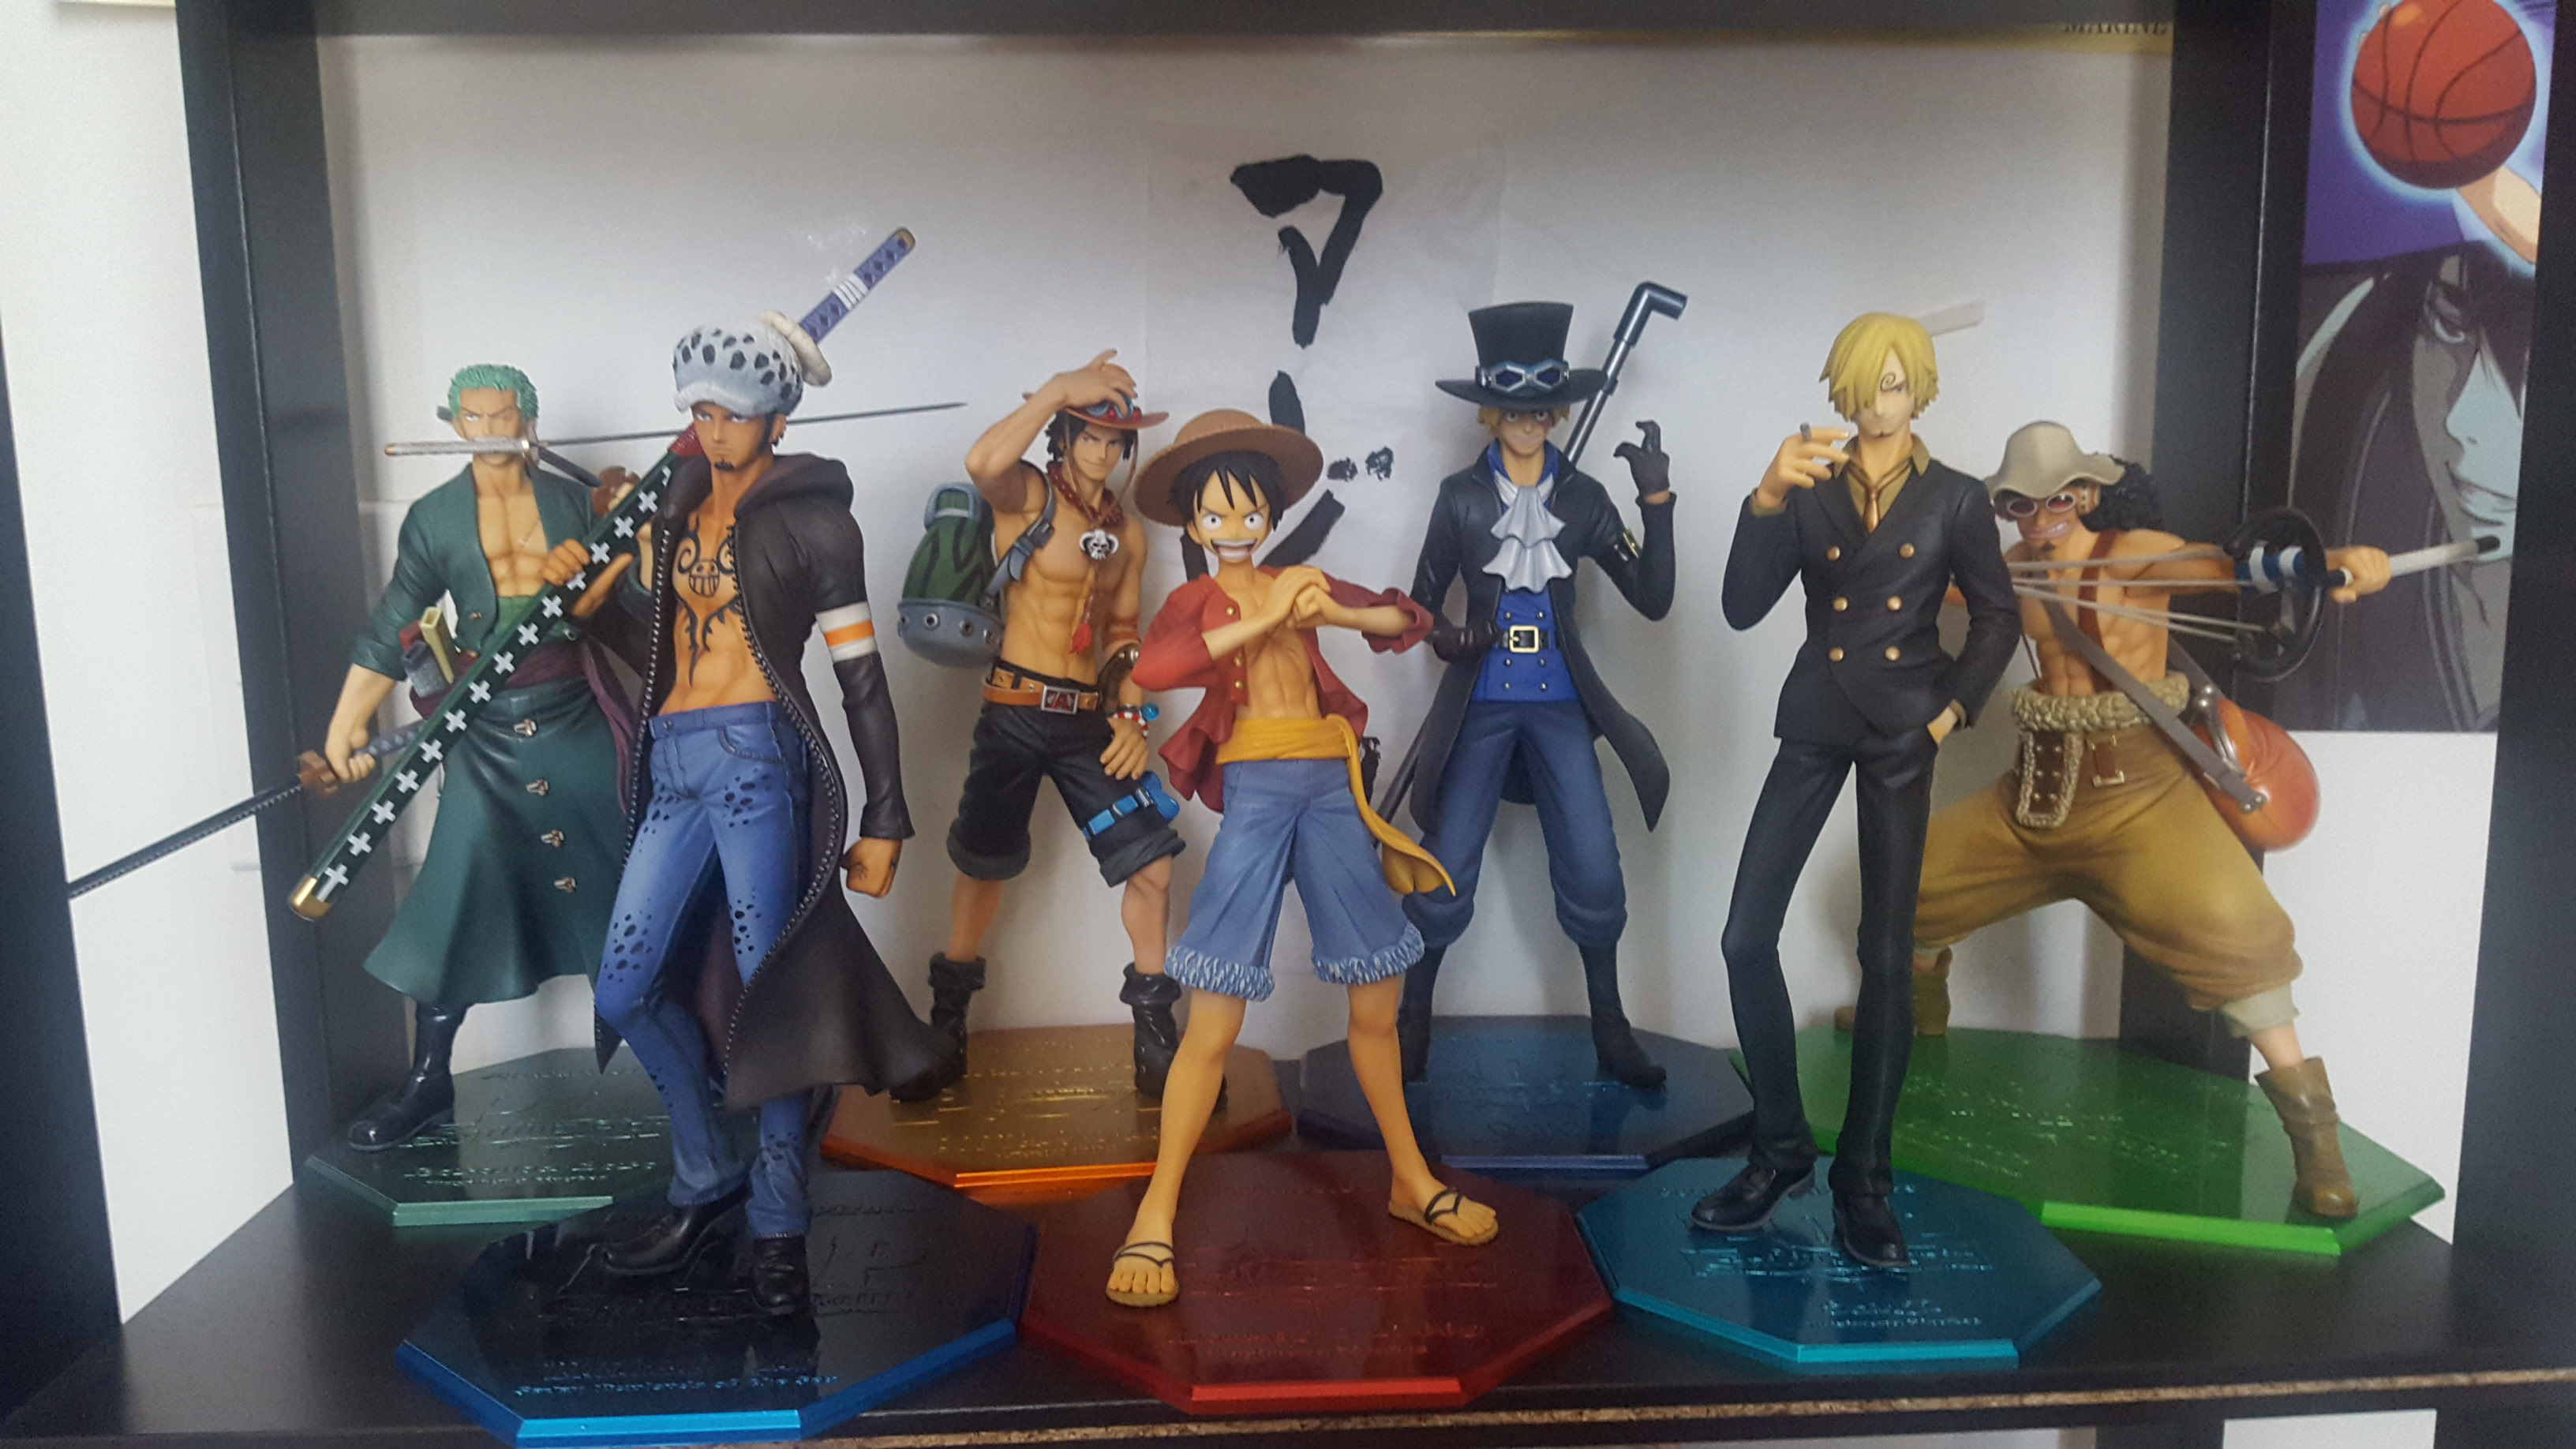 "megahouse one_piece usopp sanji monkey_d._luffy portgas_d._ace excellent_model iwamoto_kunihito roronoa_zoro shueisha trafalgar_law oda_eiichiro portrait_of_pirates_dx attm toei_animation sabo andou_kenji portrait_of_pirates_""sailing_again"" ishiyama_yuuki pinpoint"